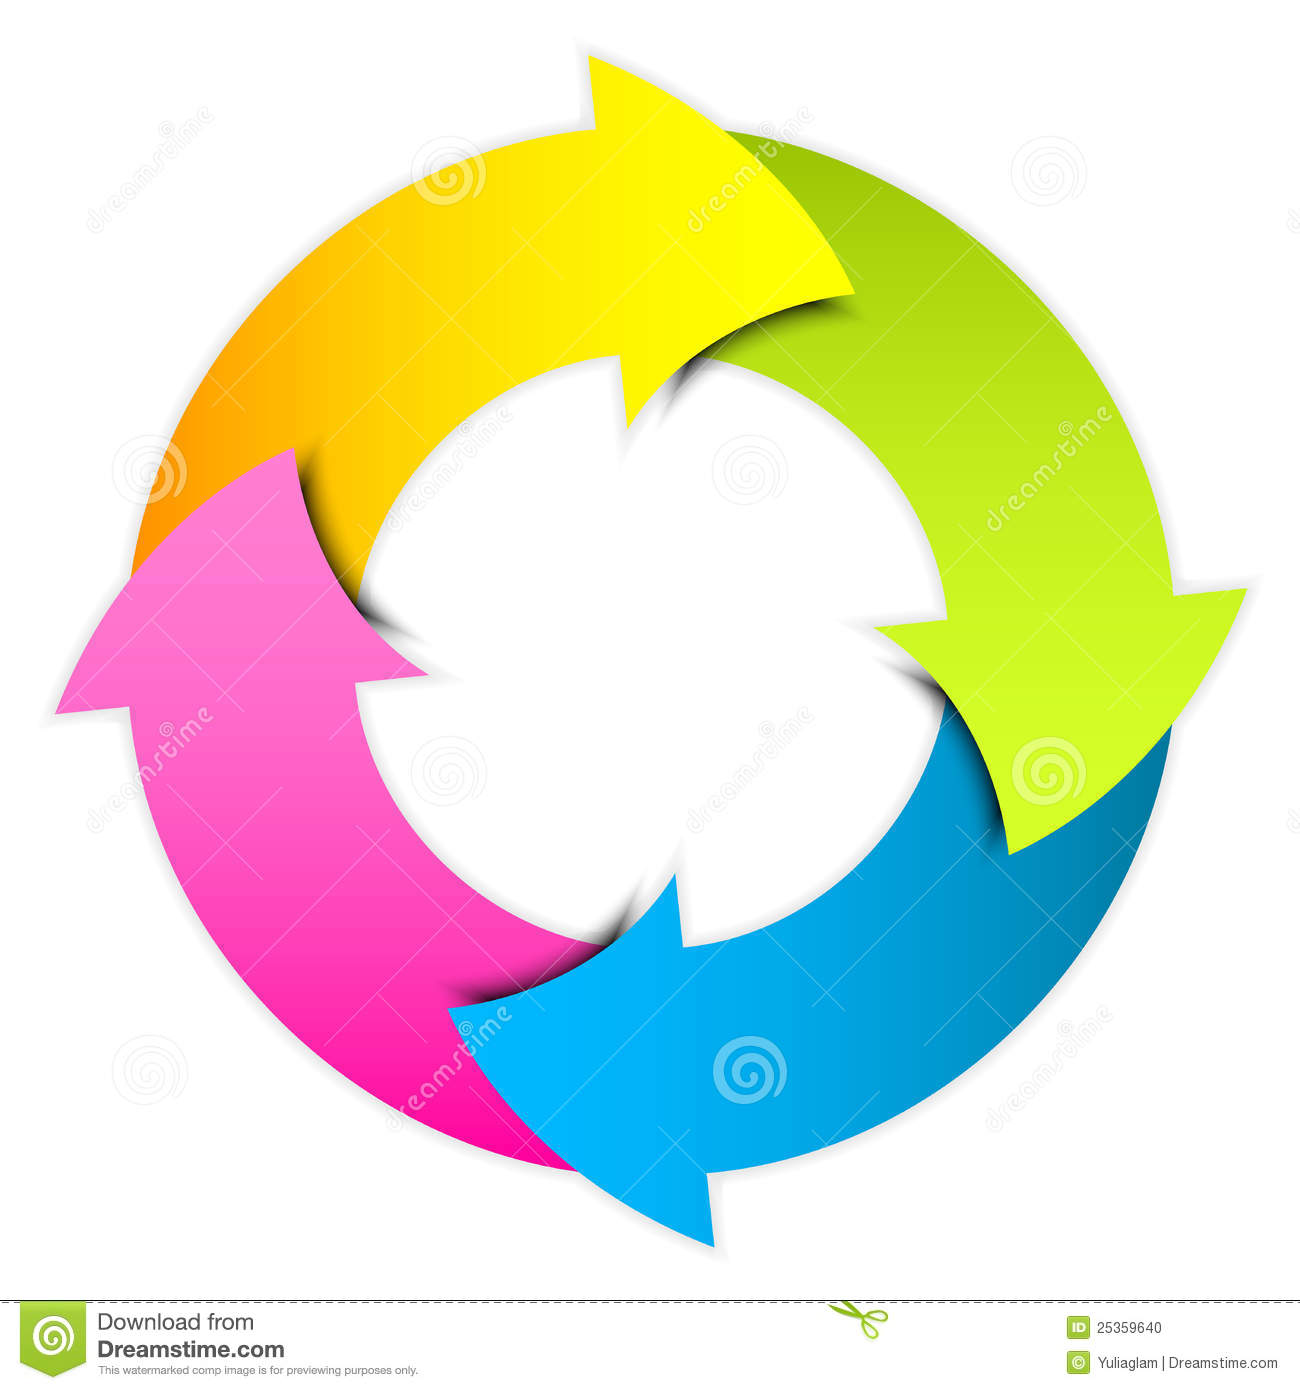 clipart arrows in a circle - photo #34